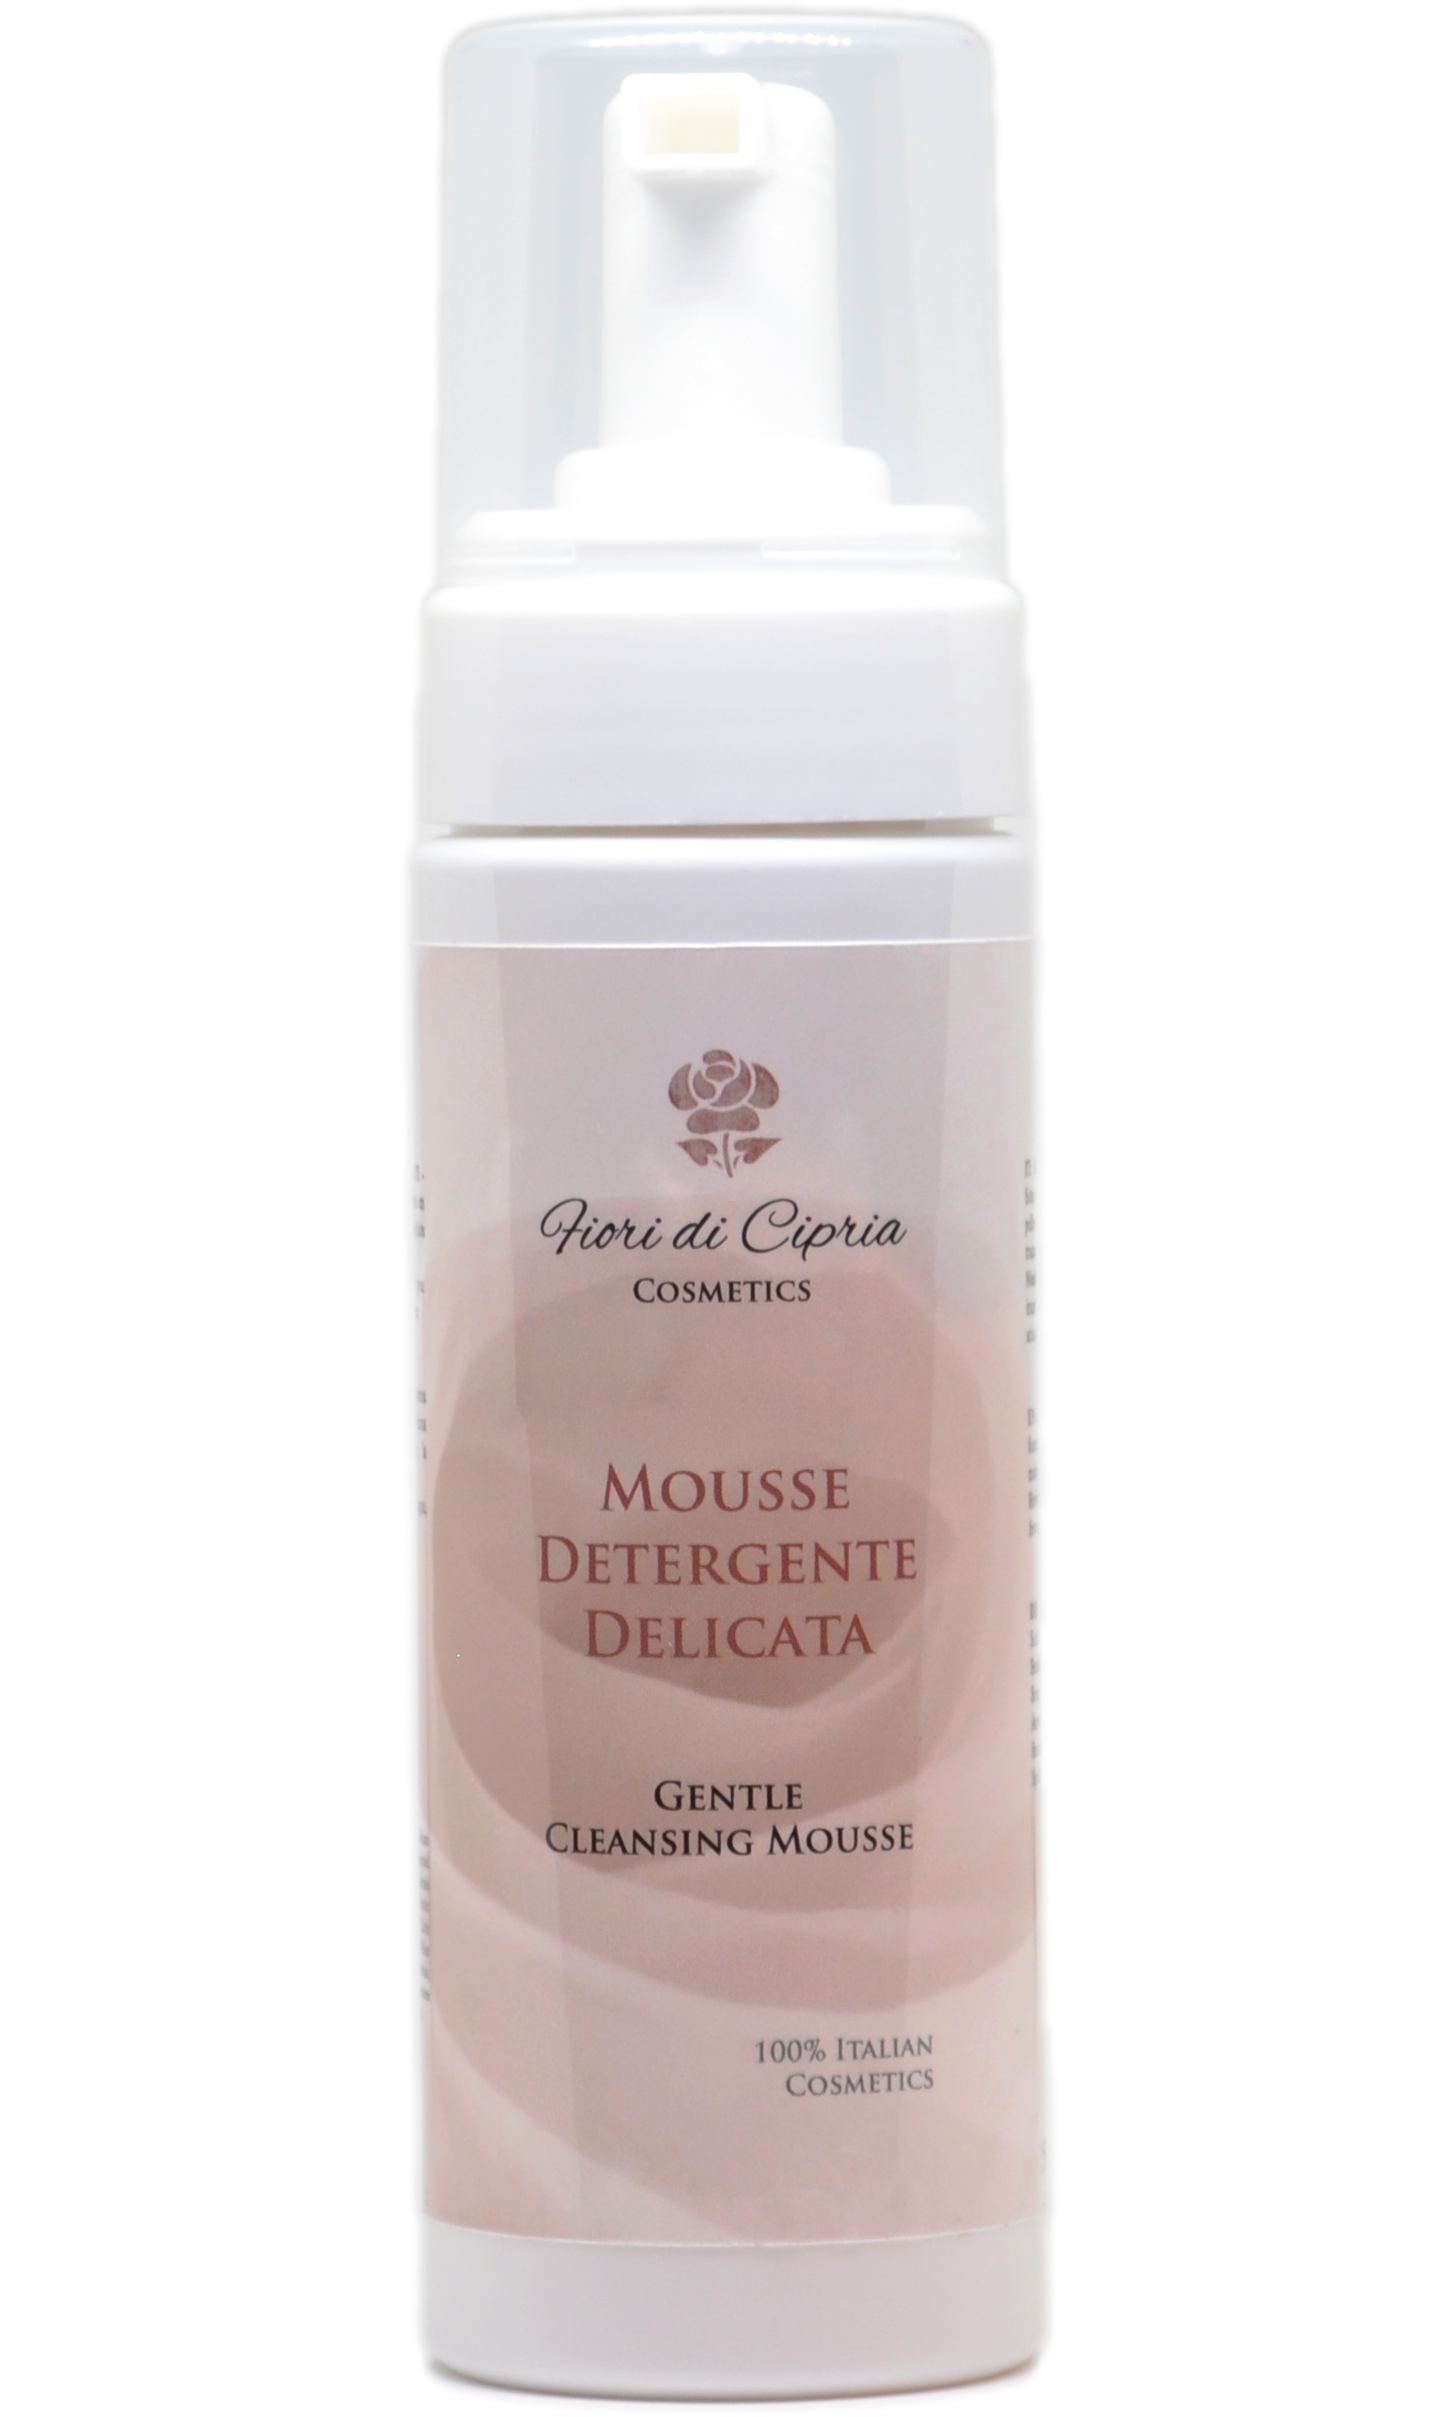 Gentle Cleansing Mousse